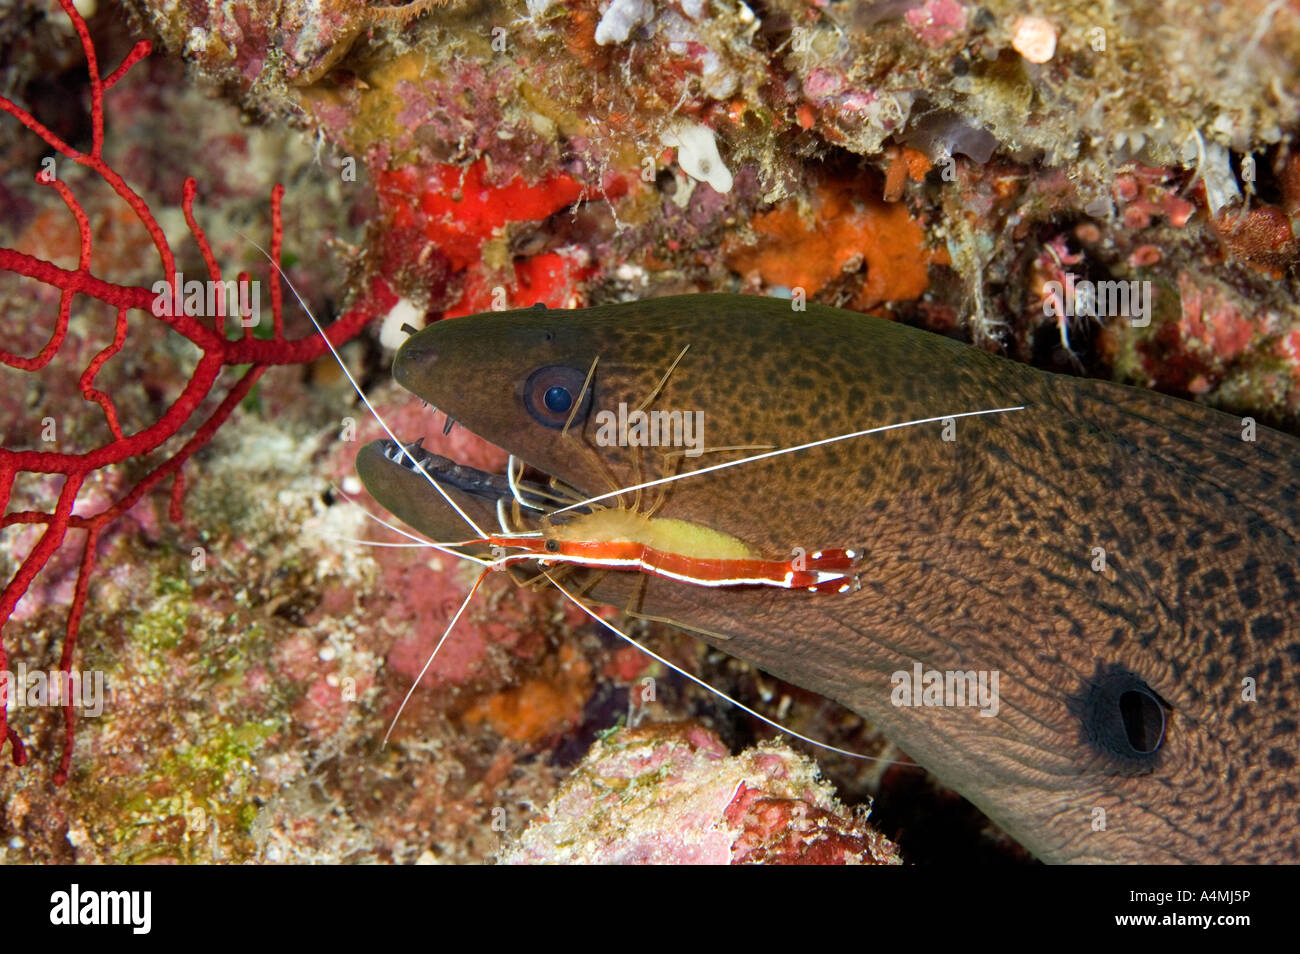 giant-moray-gymnothorax-javanicus-and-cleaner-shrimp-lysmata-amboinensis-A4MJ5P.jpg